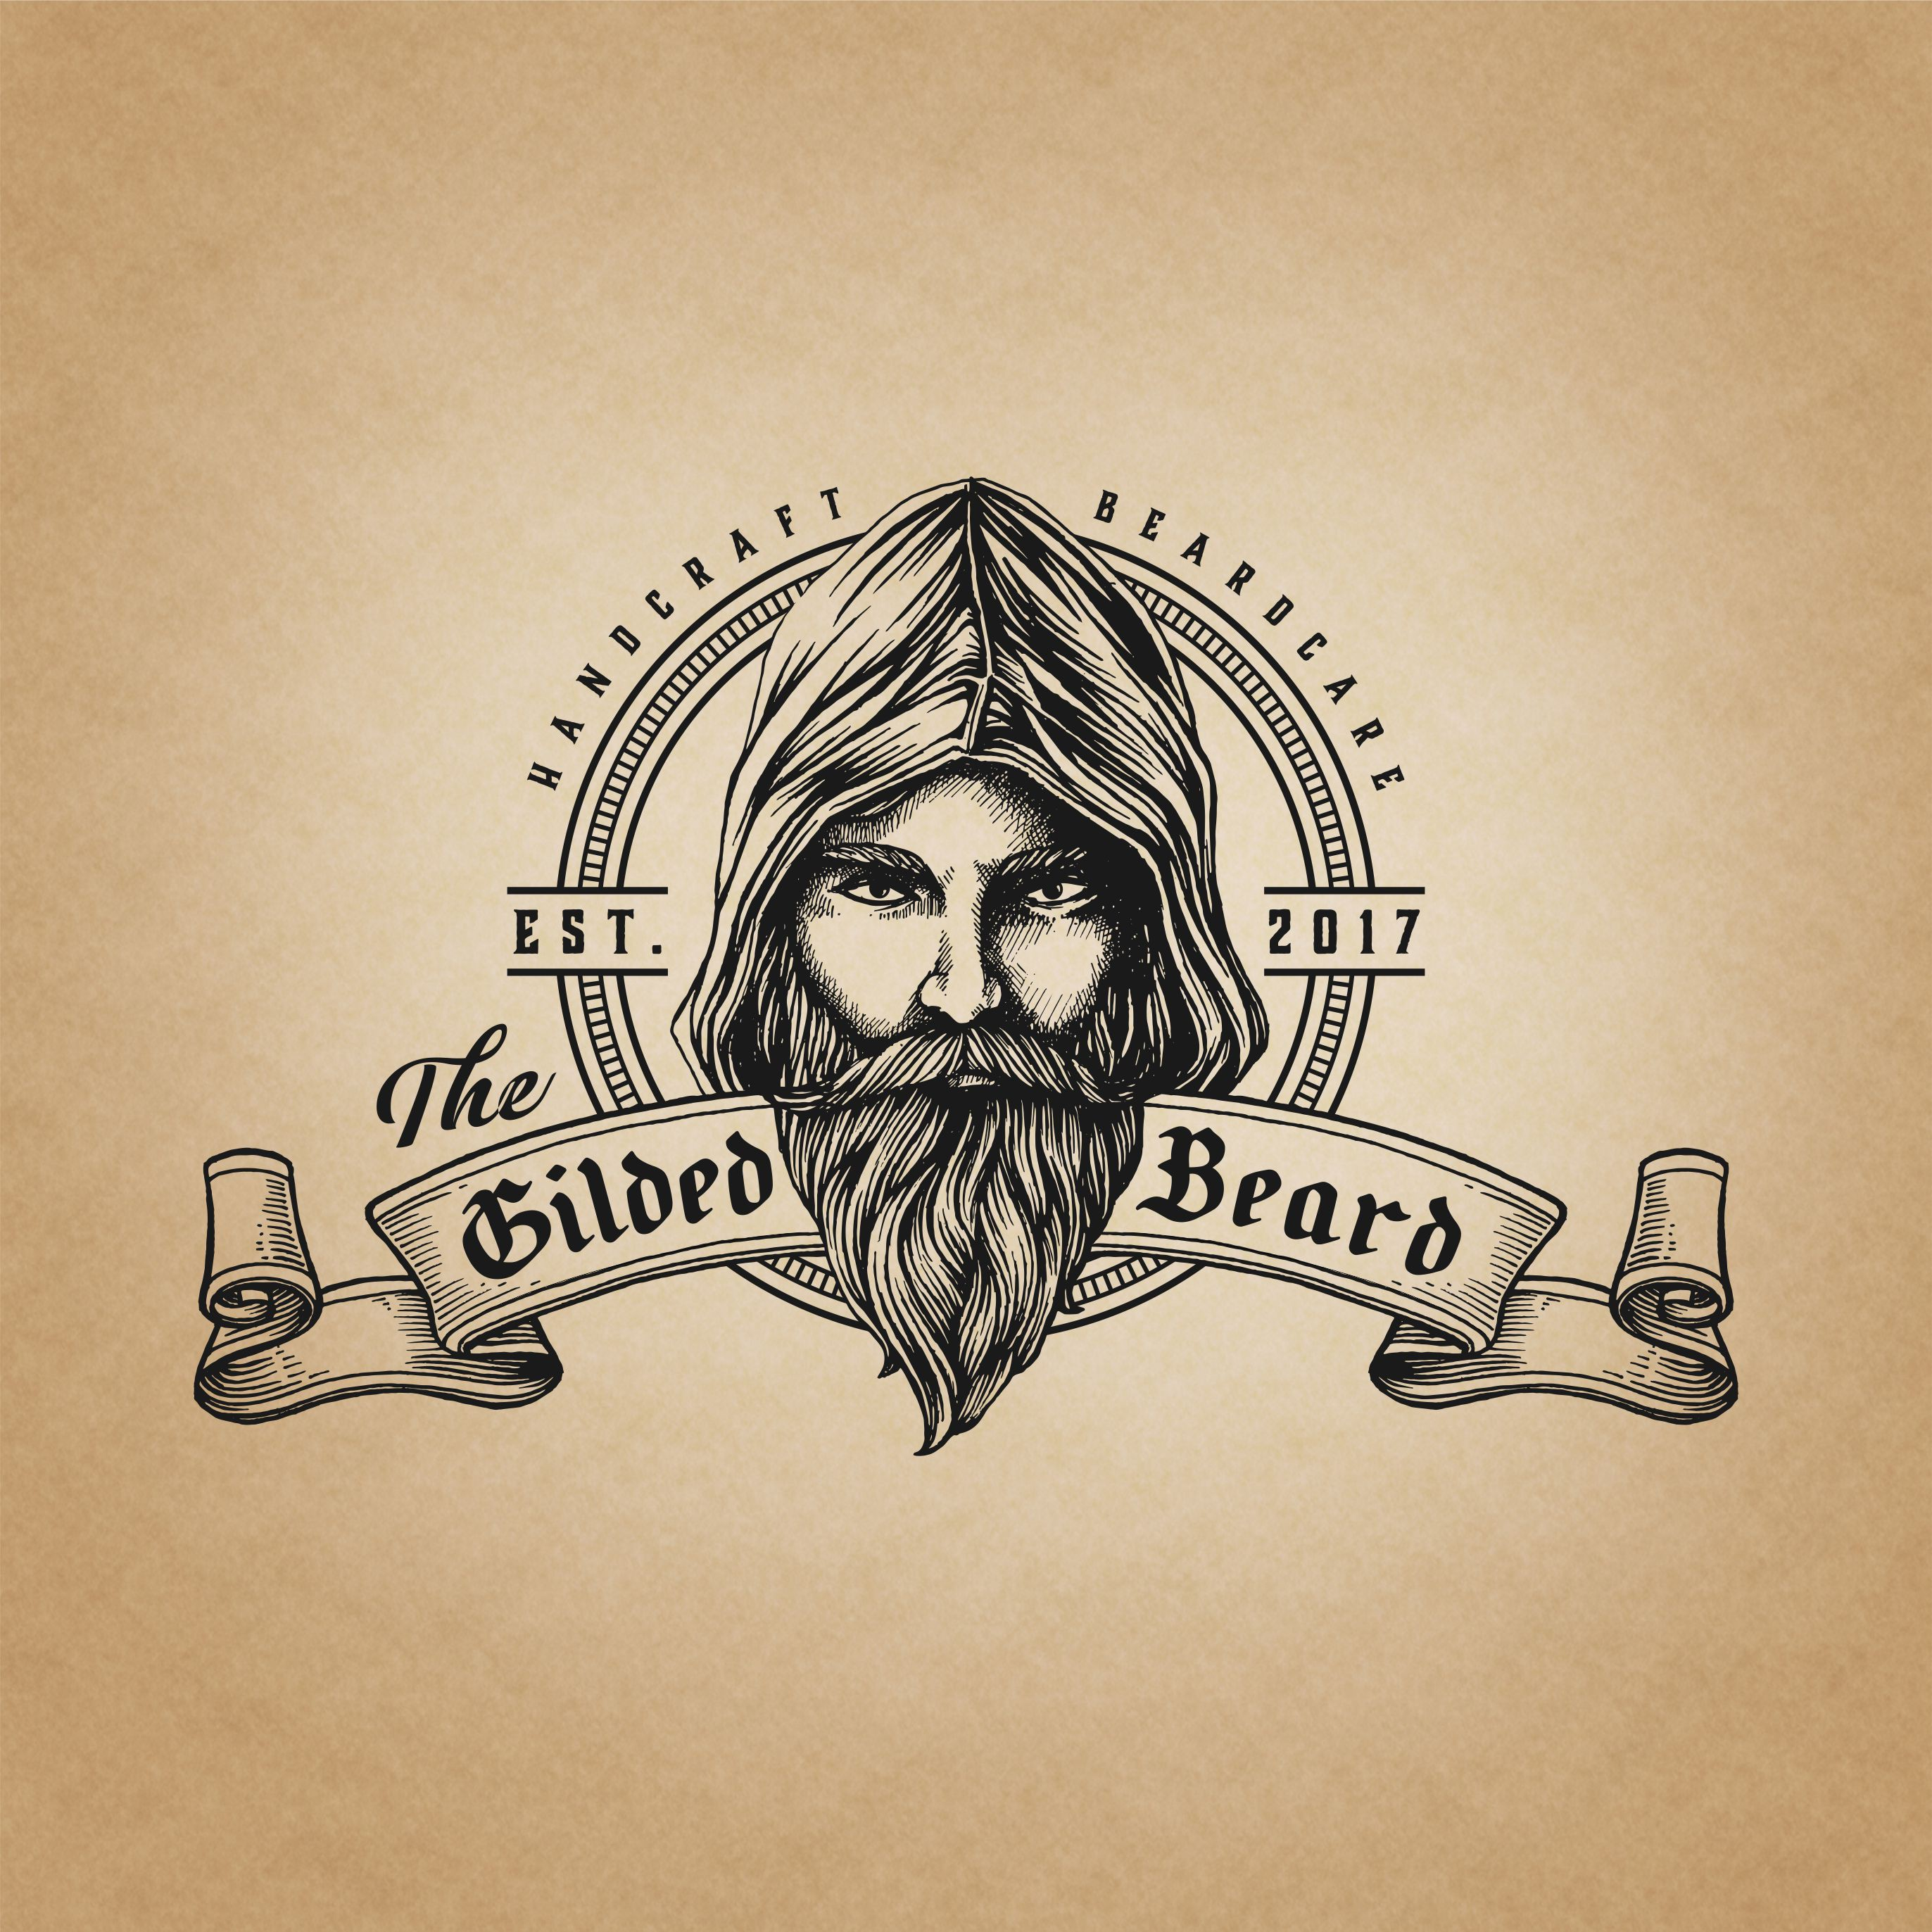 We need an awesome Logo for our Beard Oil/Balm Company